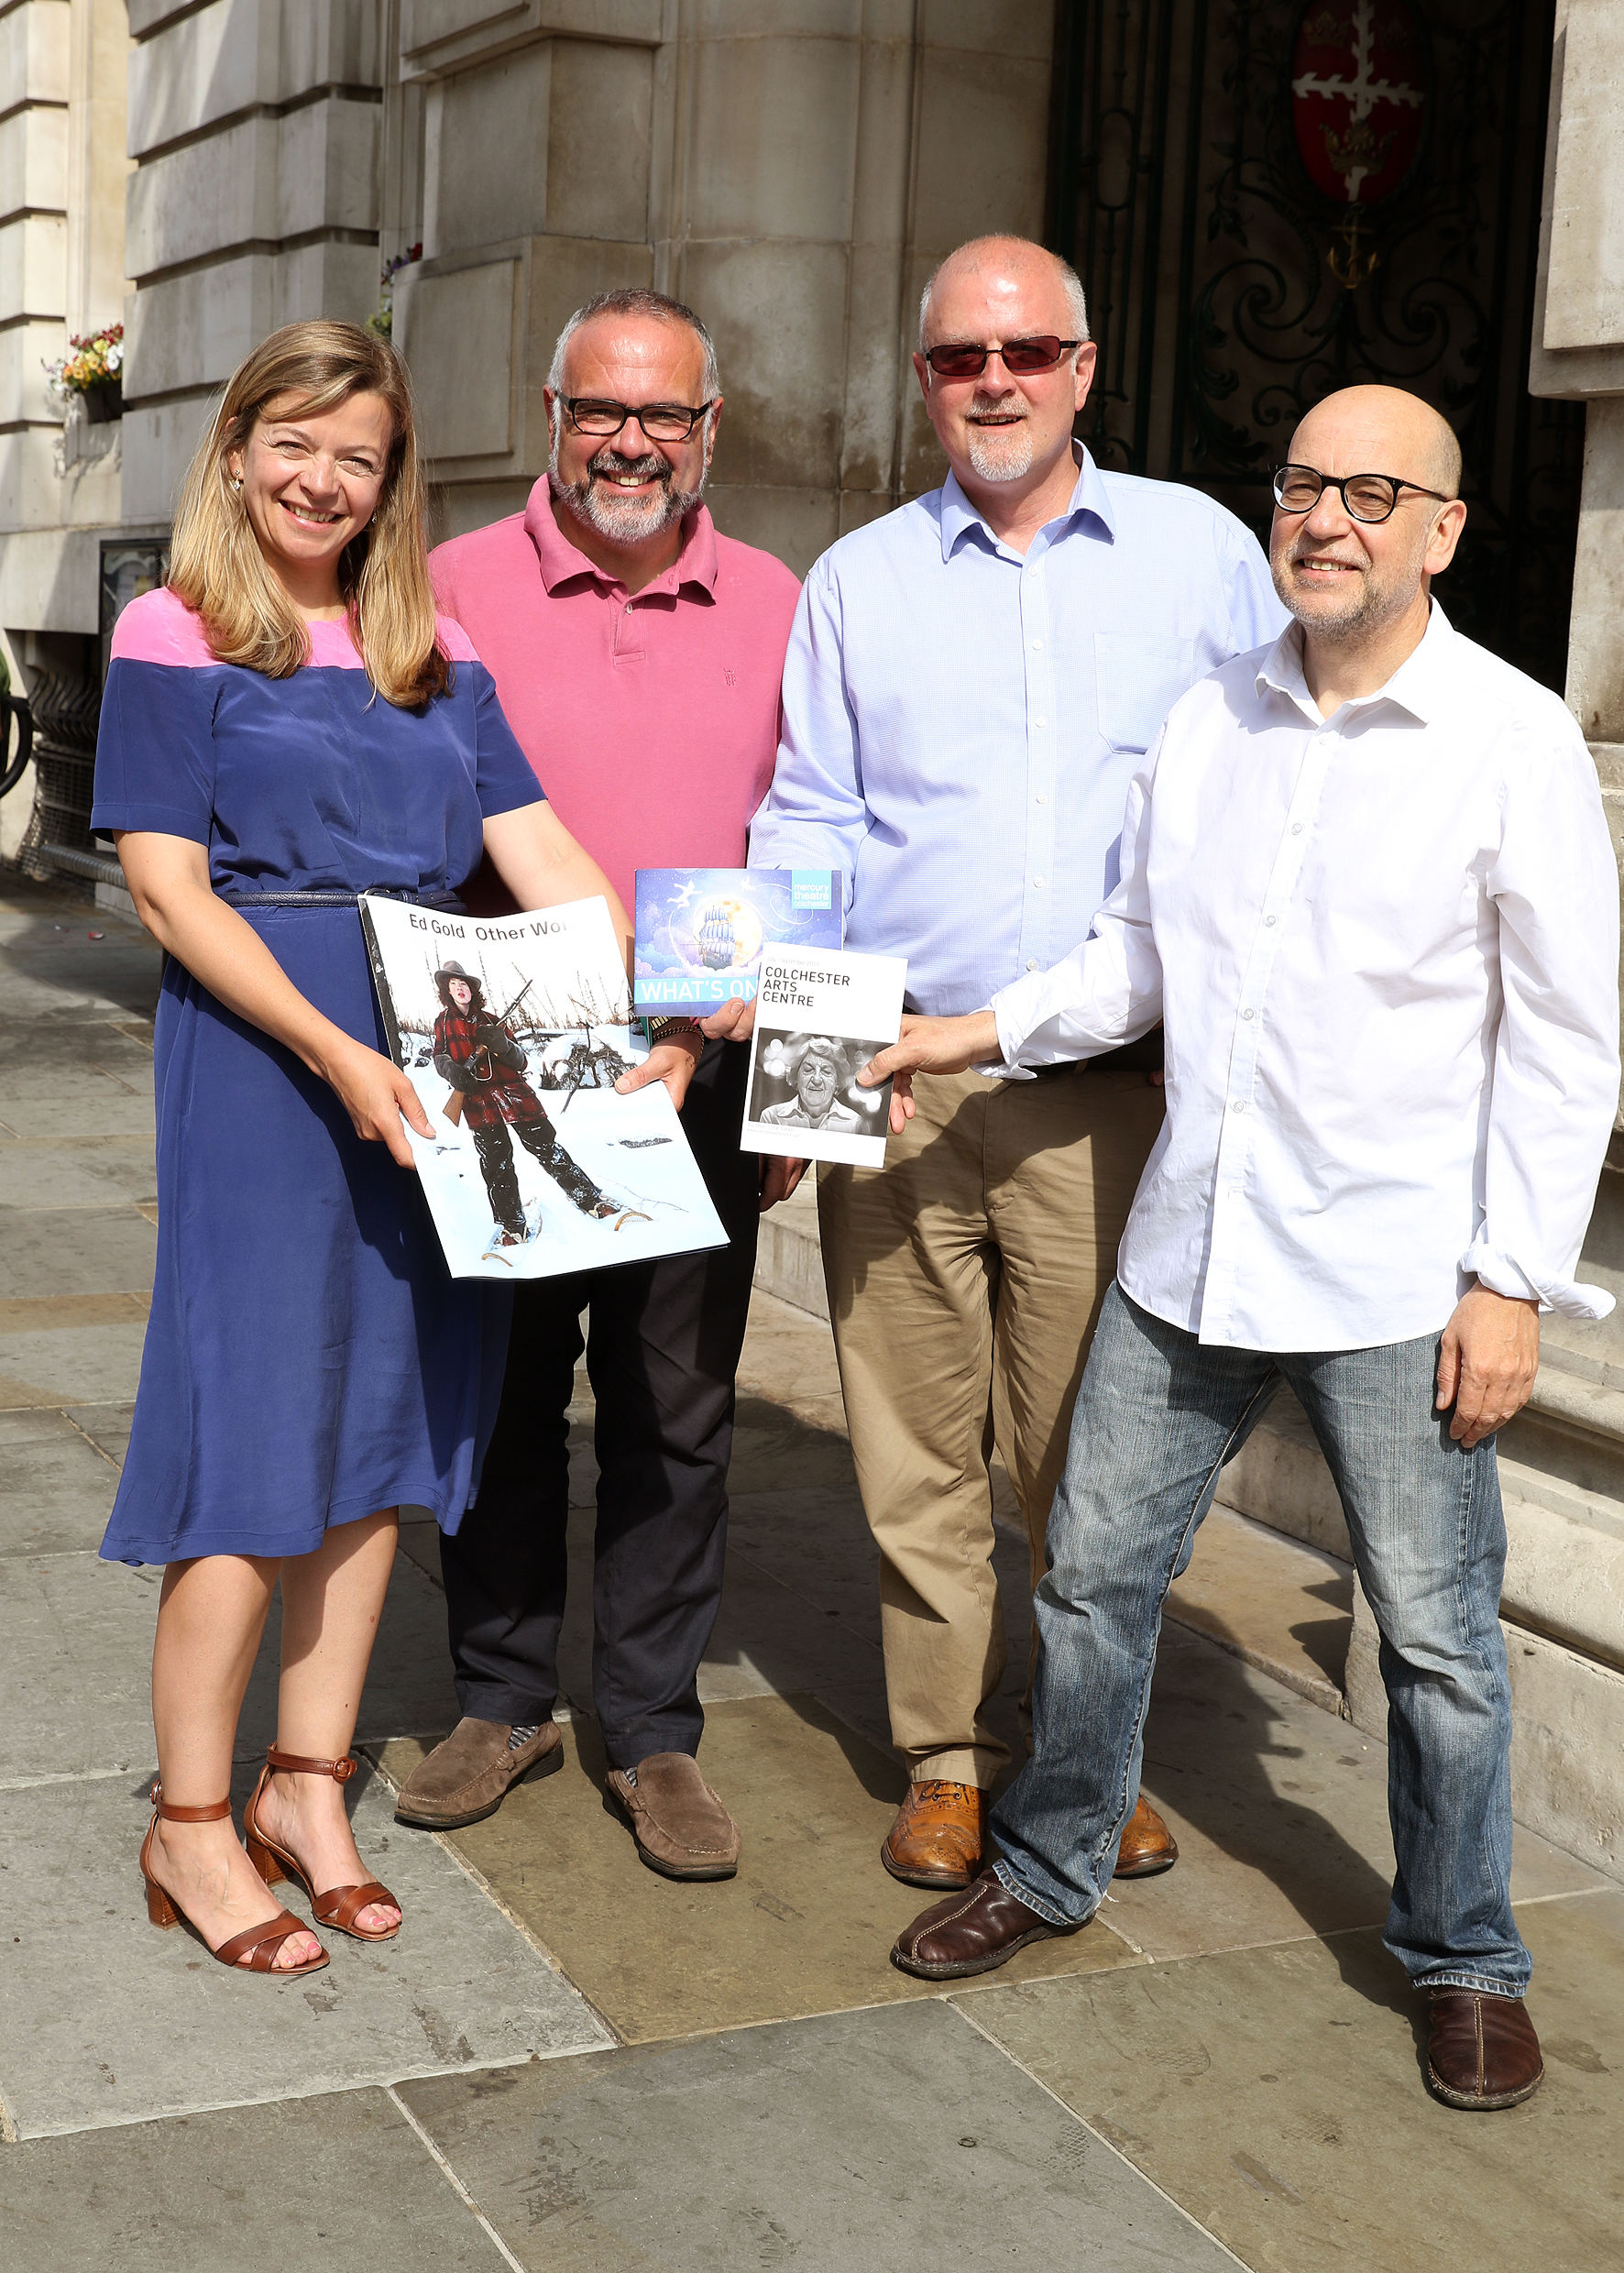 From L-R: Sally Shaw (Director of Firstsite) Cllr Tim Young (Deputy Leader, Colchester Borough Council), Steve Mannix (Executive Director, Mercury Theatre Colchester), Anthony Roberts (Director, Colchester Arts Centre).